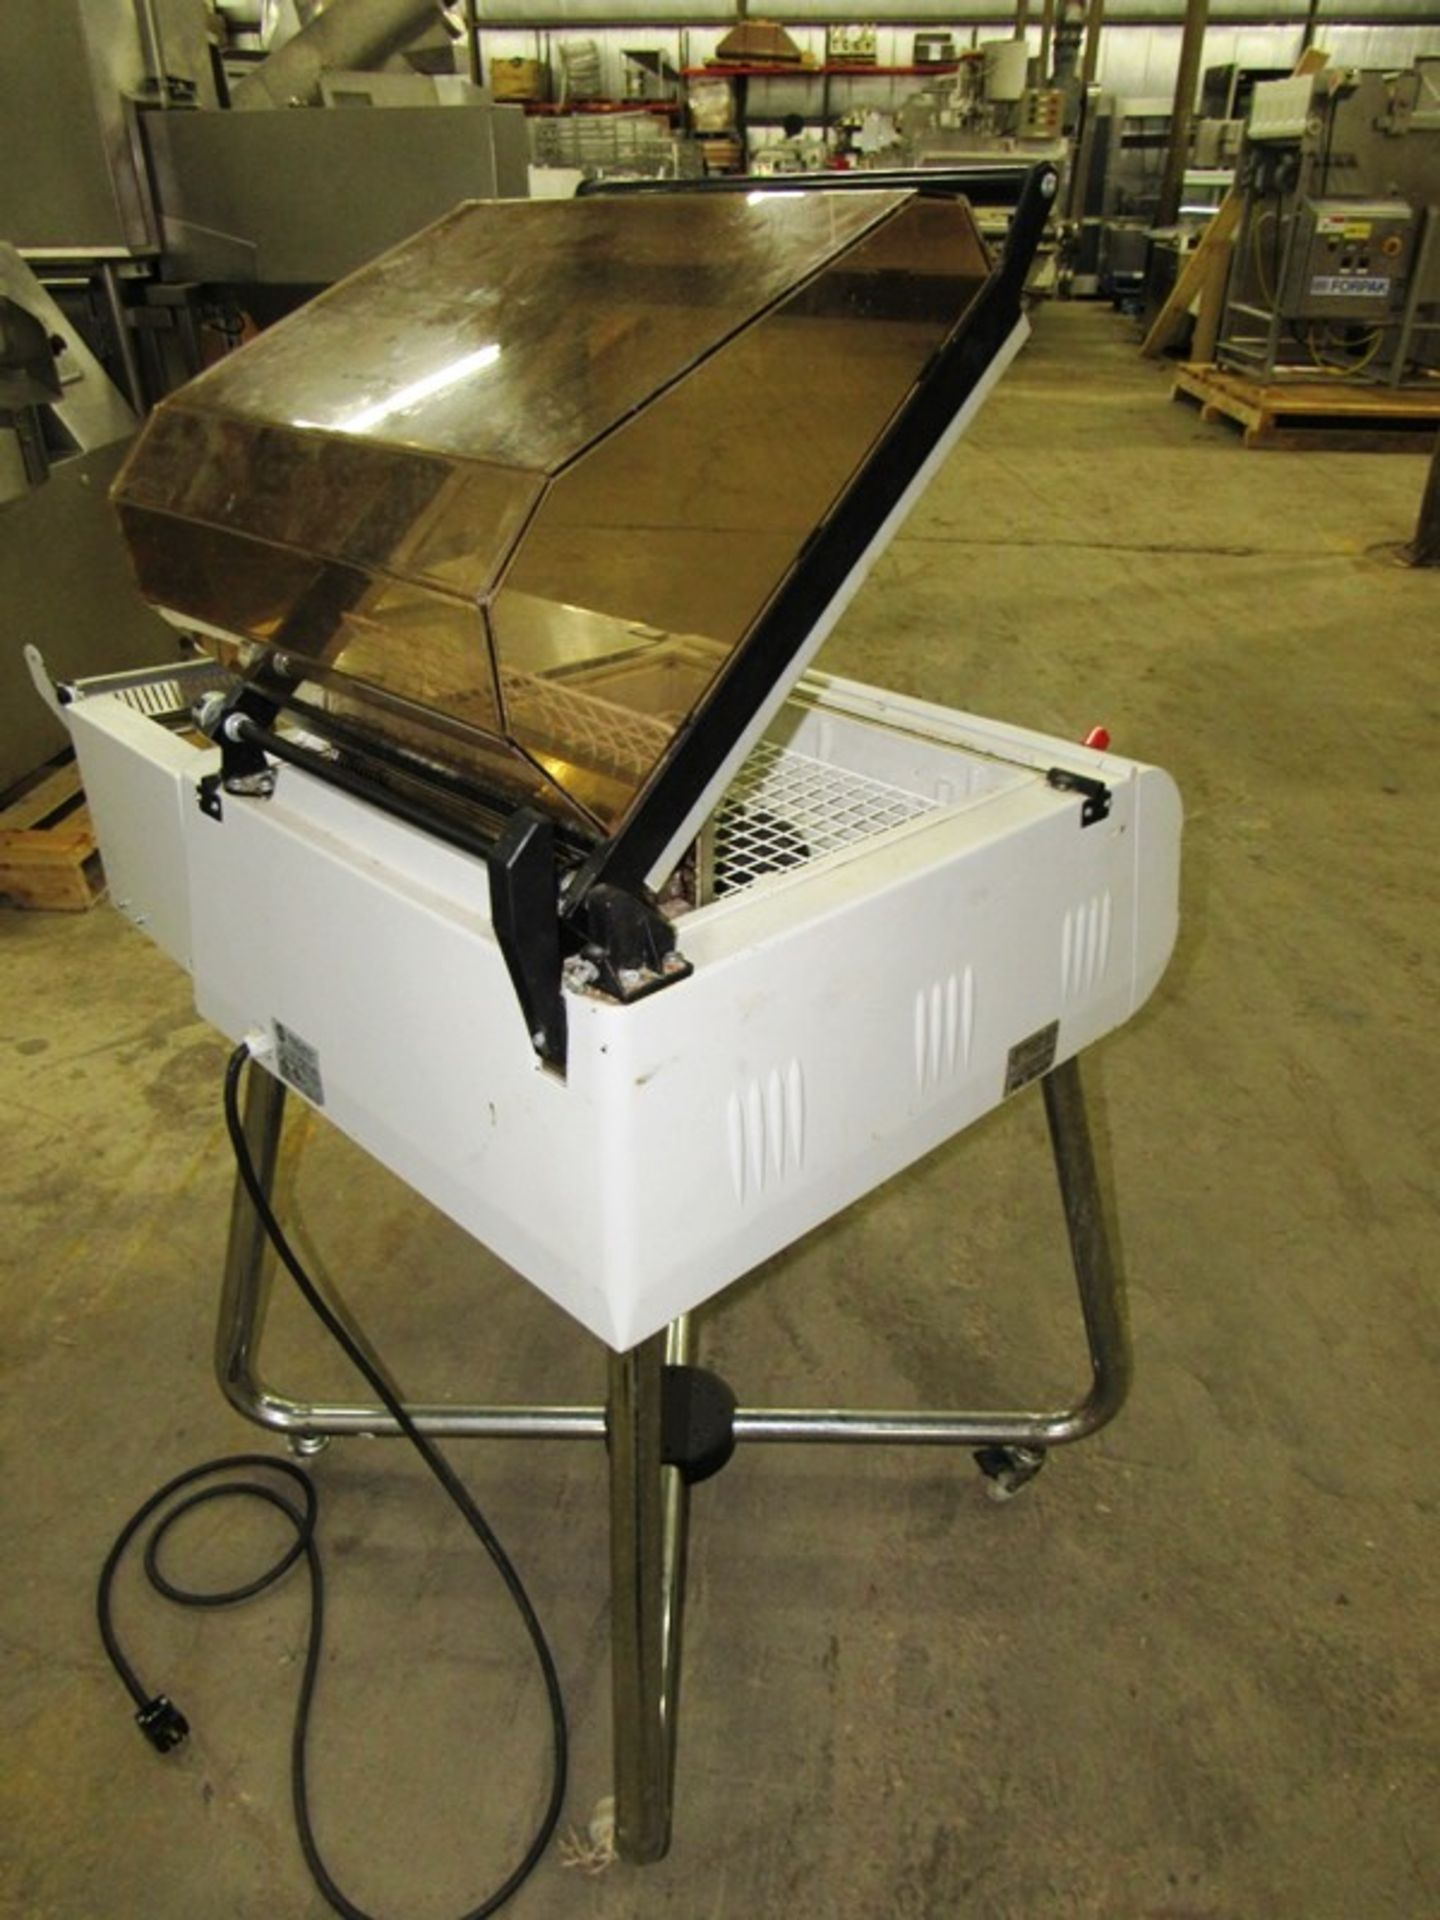 """Multipak-Torre Mdl Galaxy Shrink Wrap Machine, 17 1/2"""" W X 14"""" L X 8"""" H sealing dimensions, up to - Image 3 of 6"""